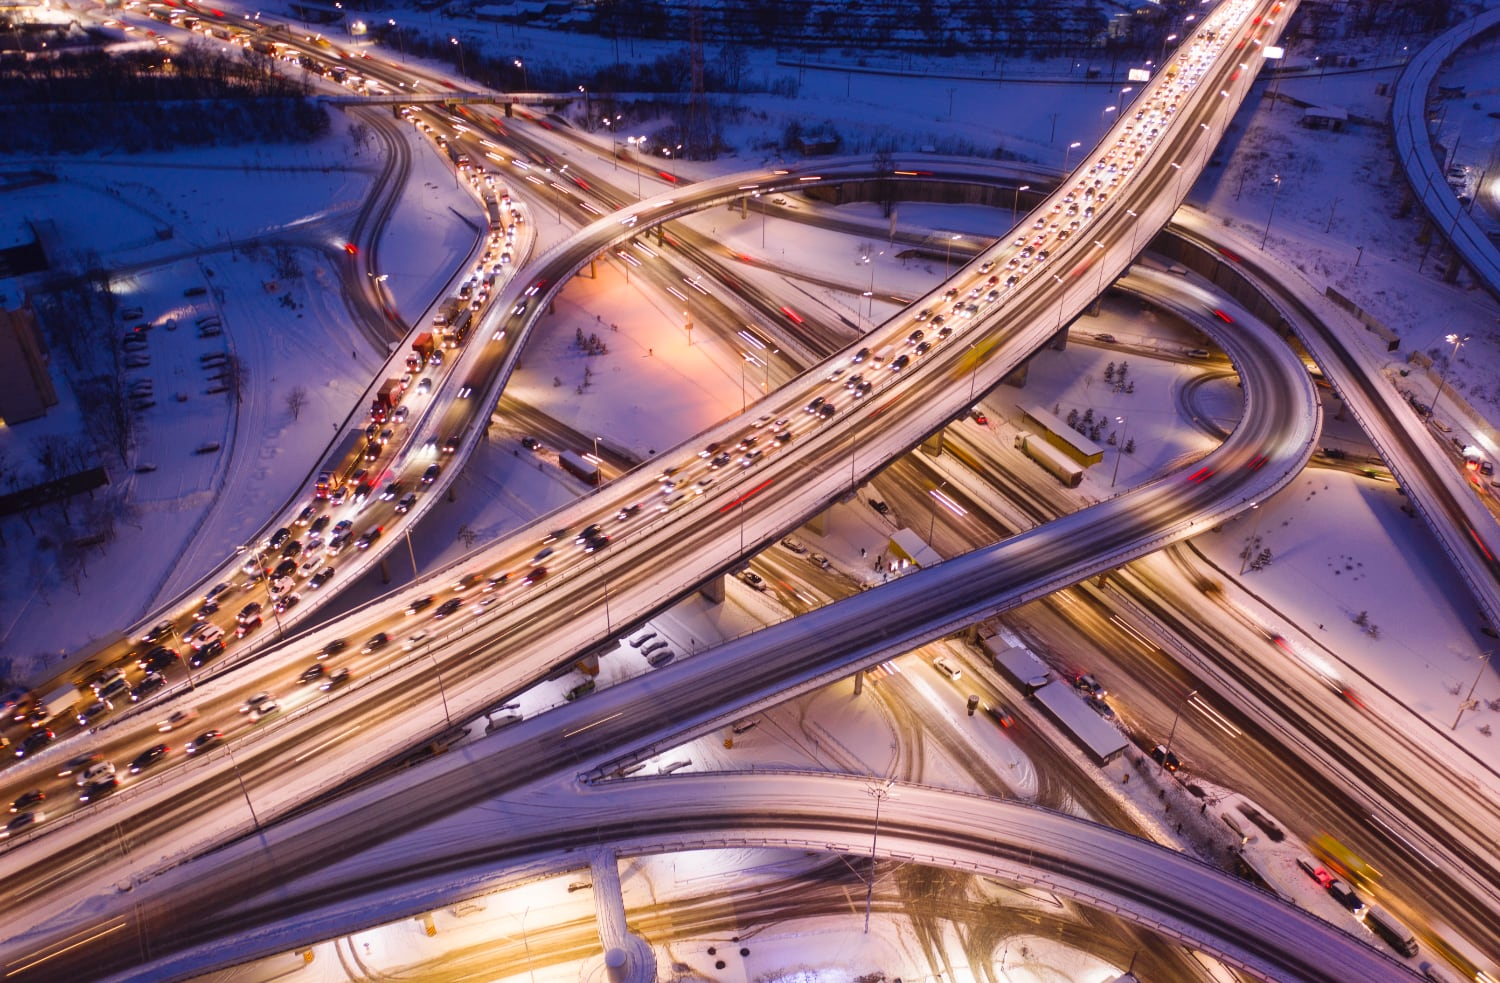 multi-level-complex-transport-interchange-loaded-with-traffic-winter-evening-road-is-illuminated-by-lanterns-drone-view